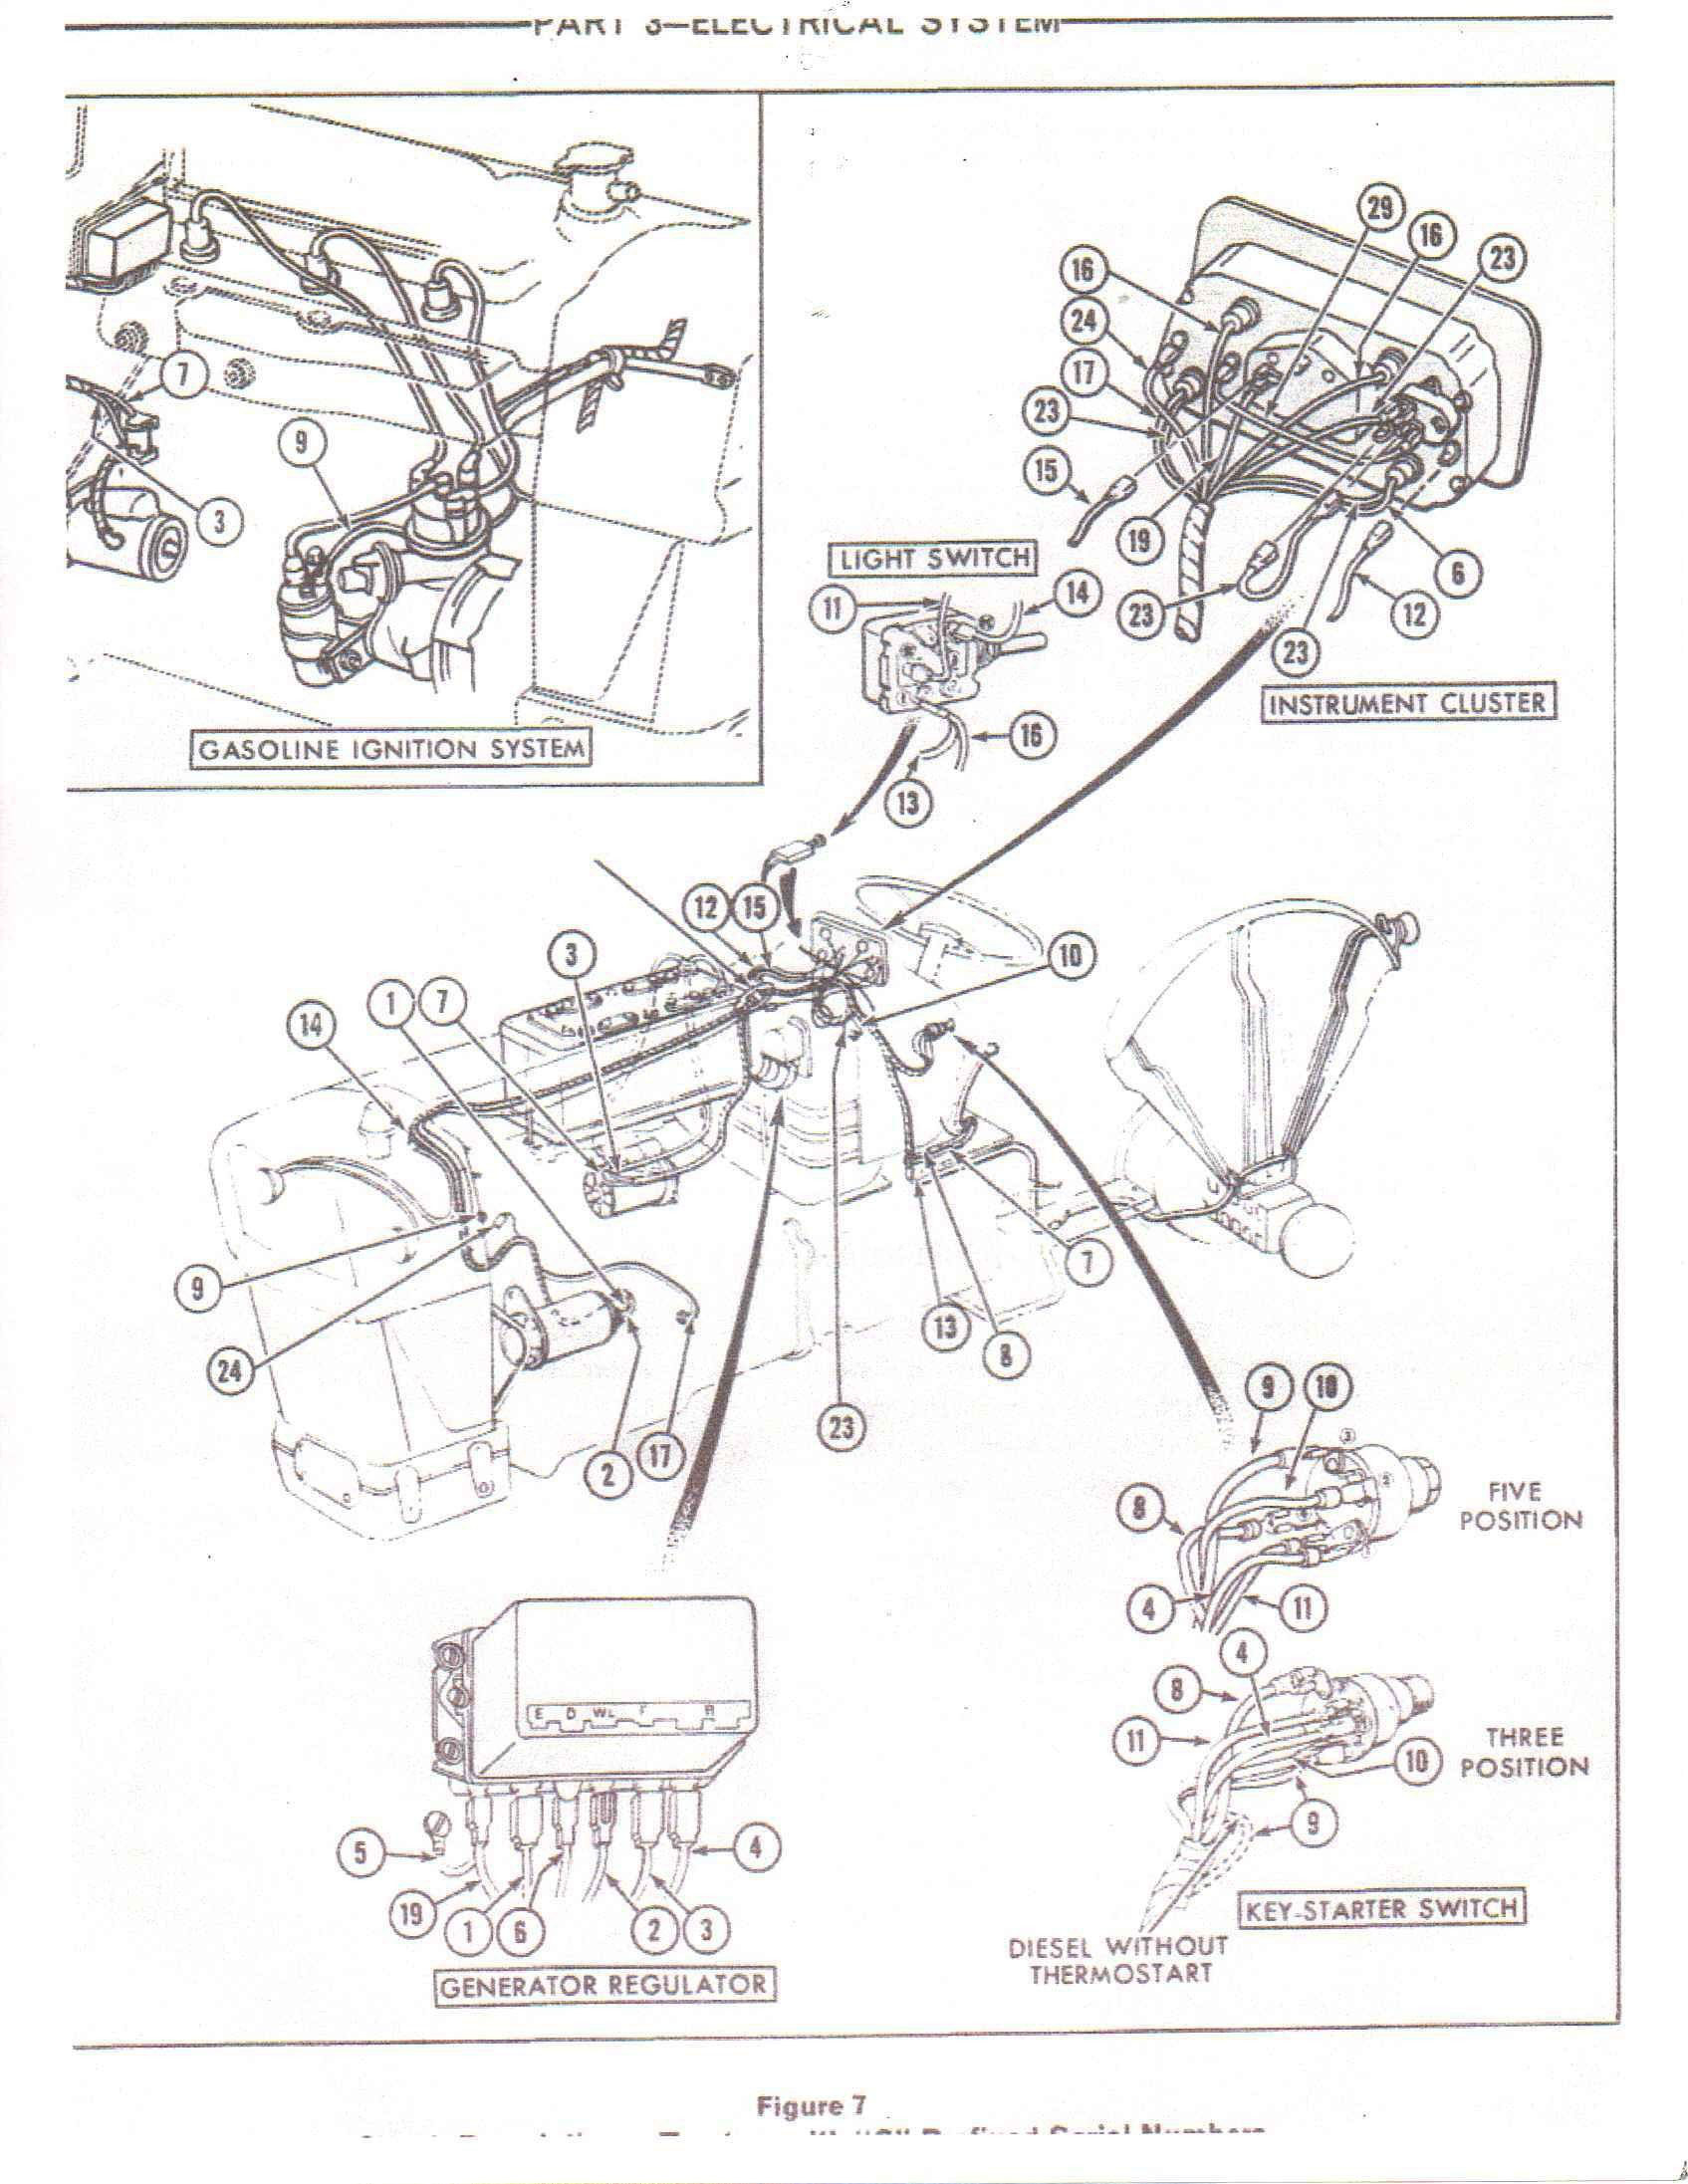 fordson tractors service repair manuals - wiring diagrams  tractor free service manuals. workshop and repair manuals